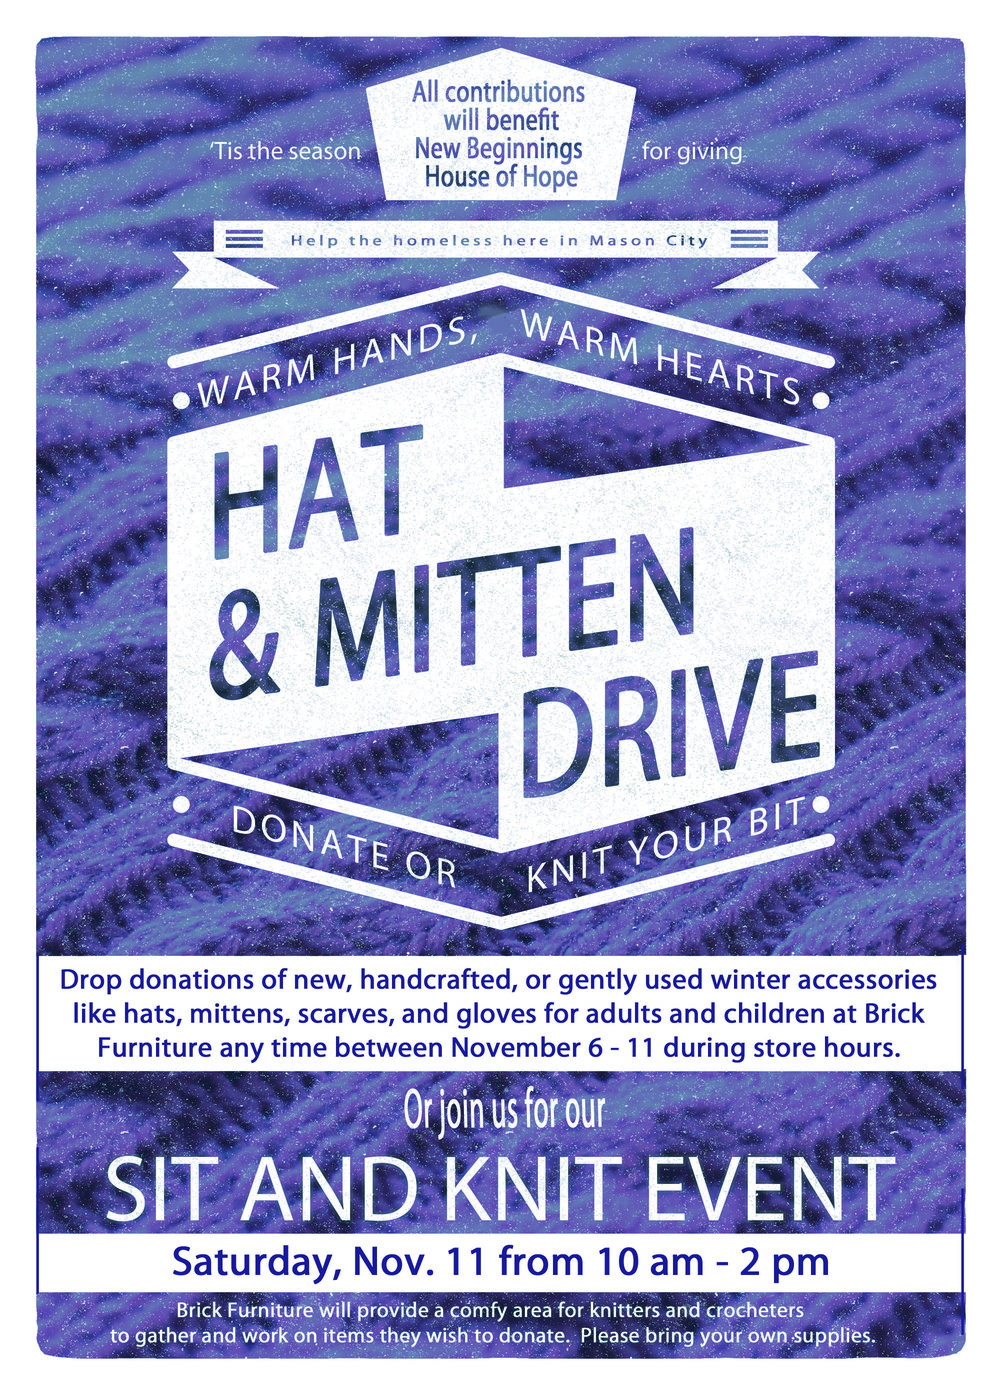 hat_mitten_drive_11x17_2017_blue_small_test.jpg